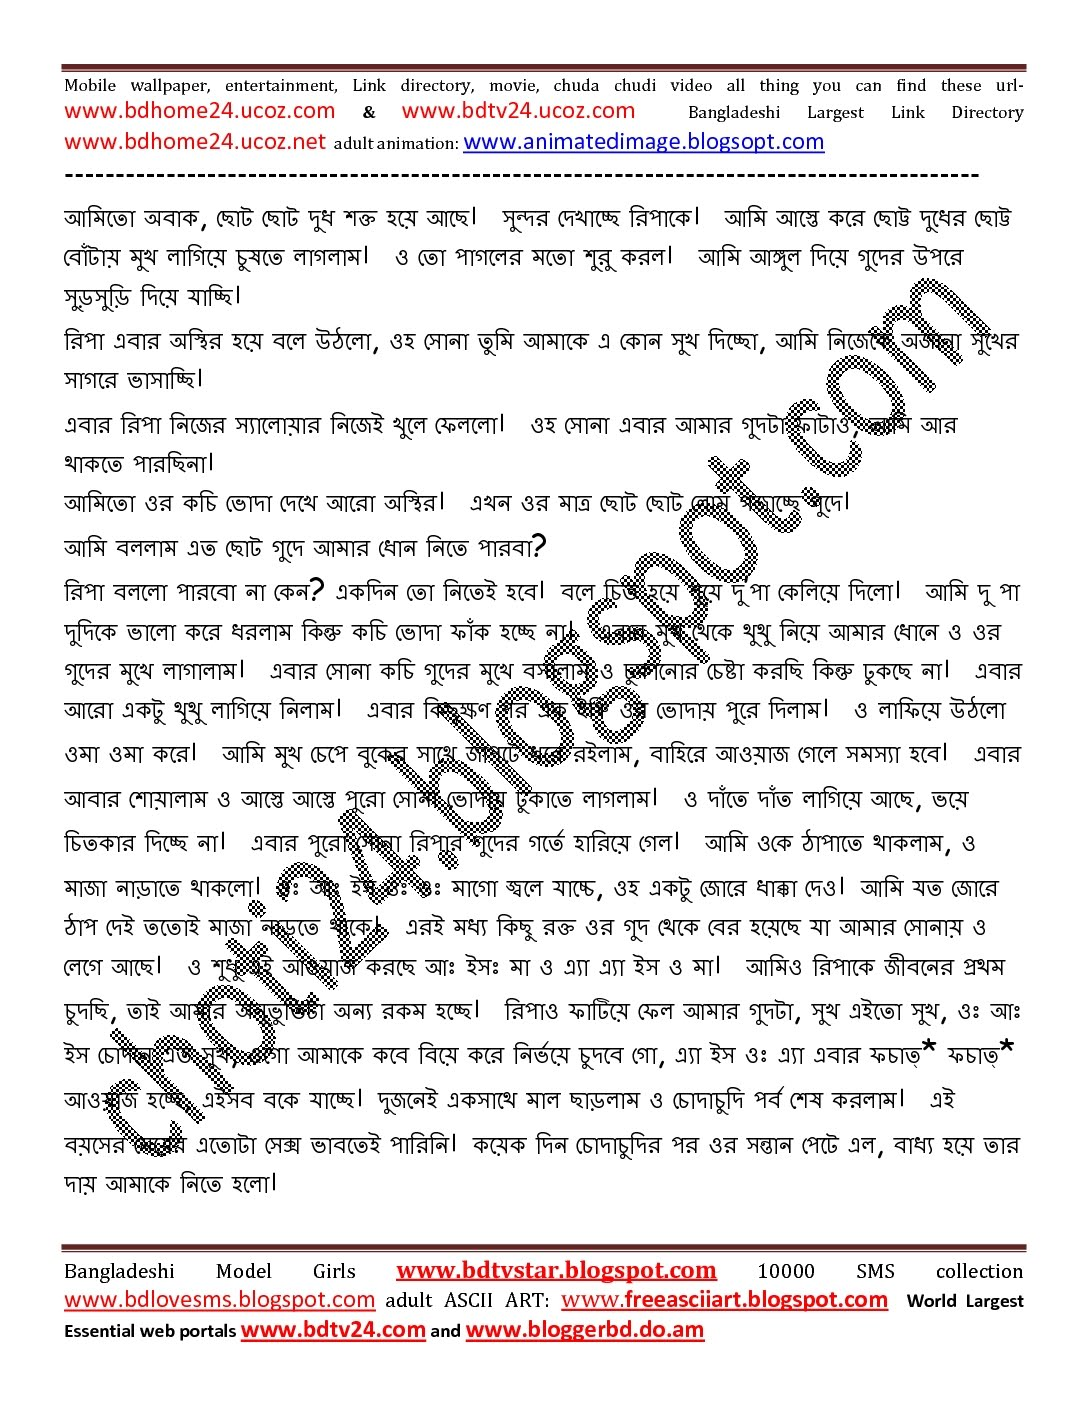 ... golpo bangla choti 2009 ebook 2010 story bangladeshi rosomoy indian